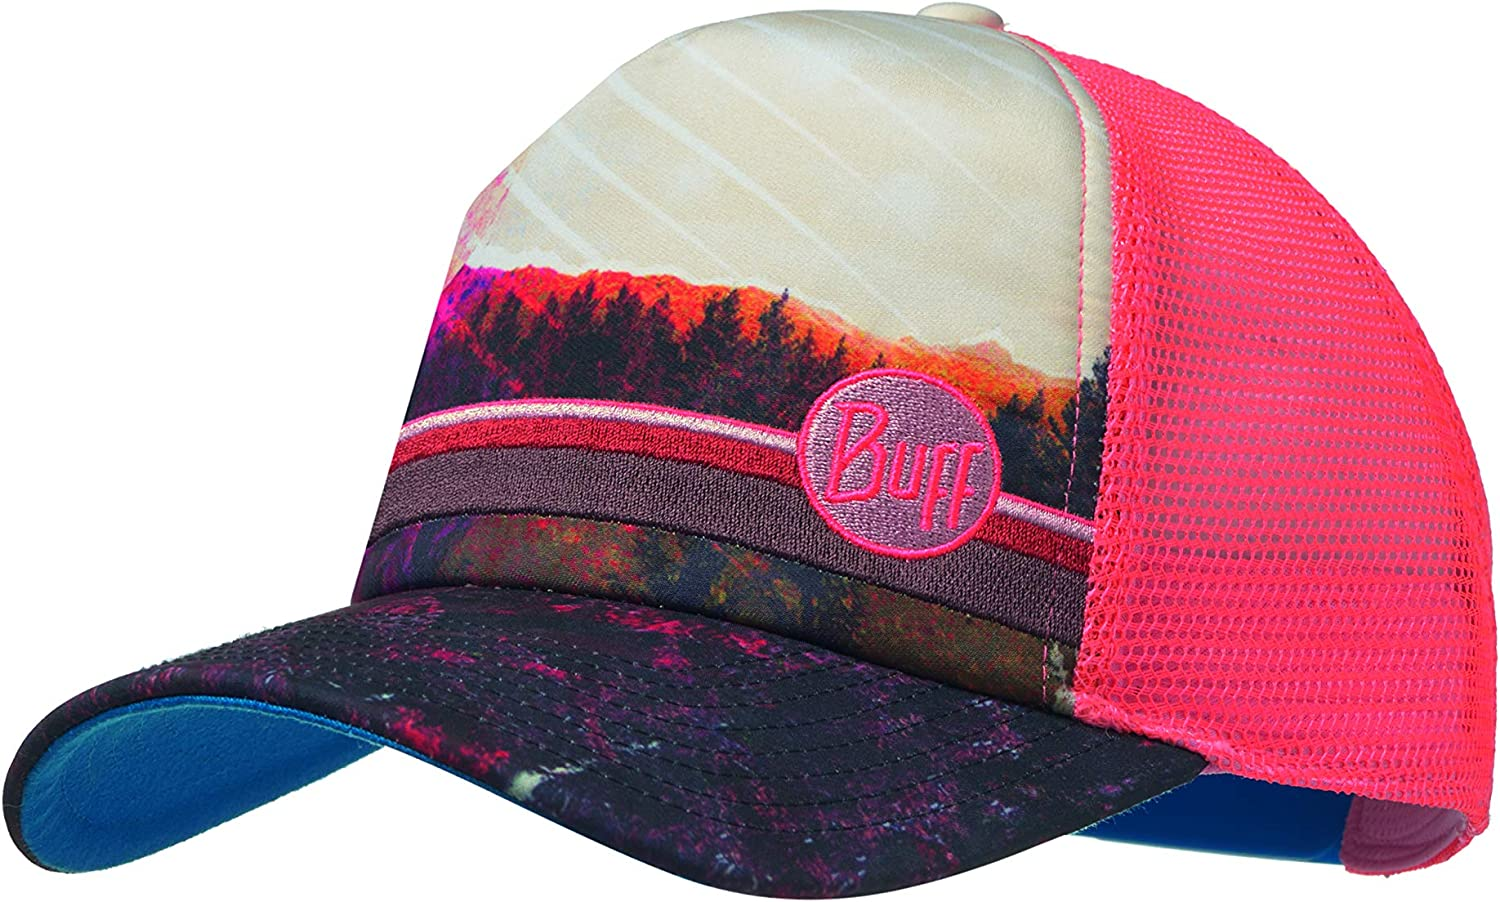 Buff Collage Gorra Trucker, Mujer, Multi, Talla única: Amazon.es ...